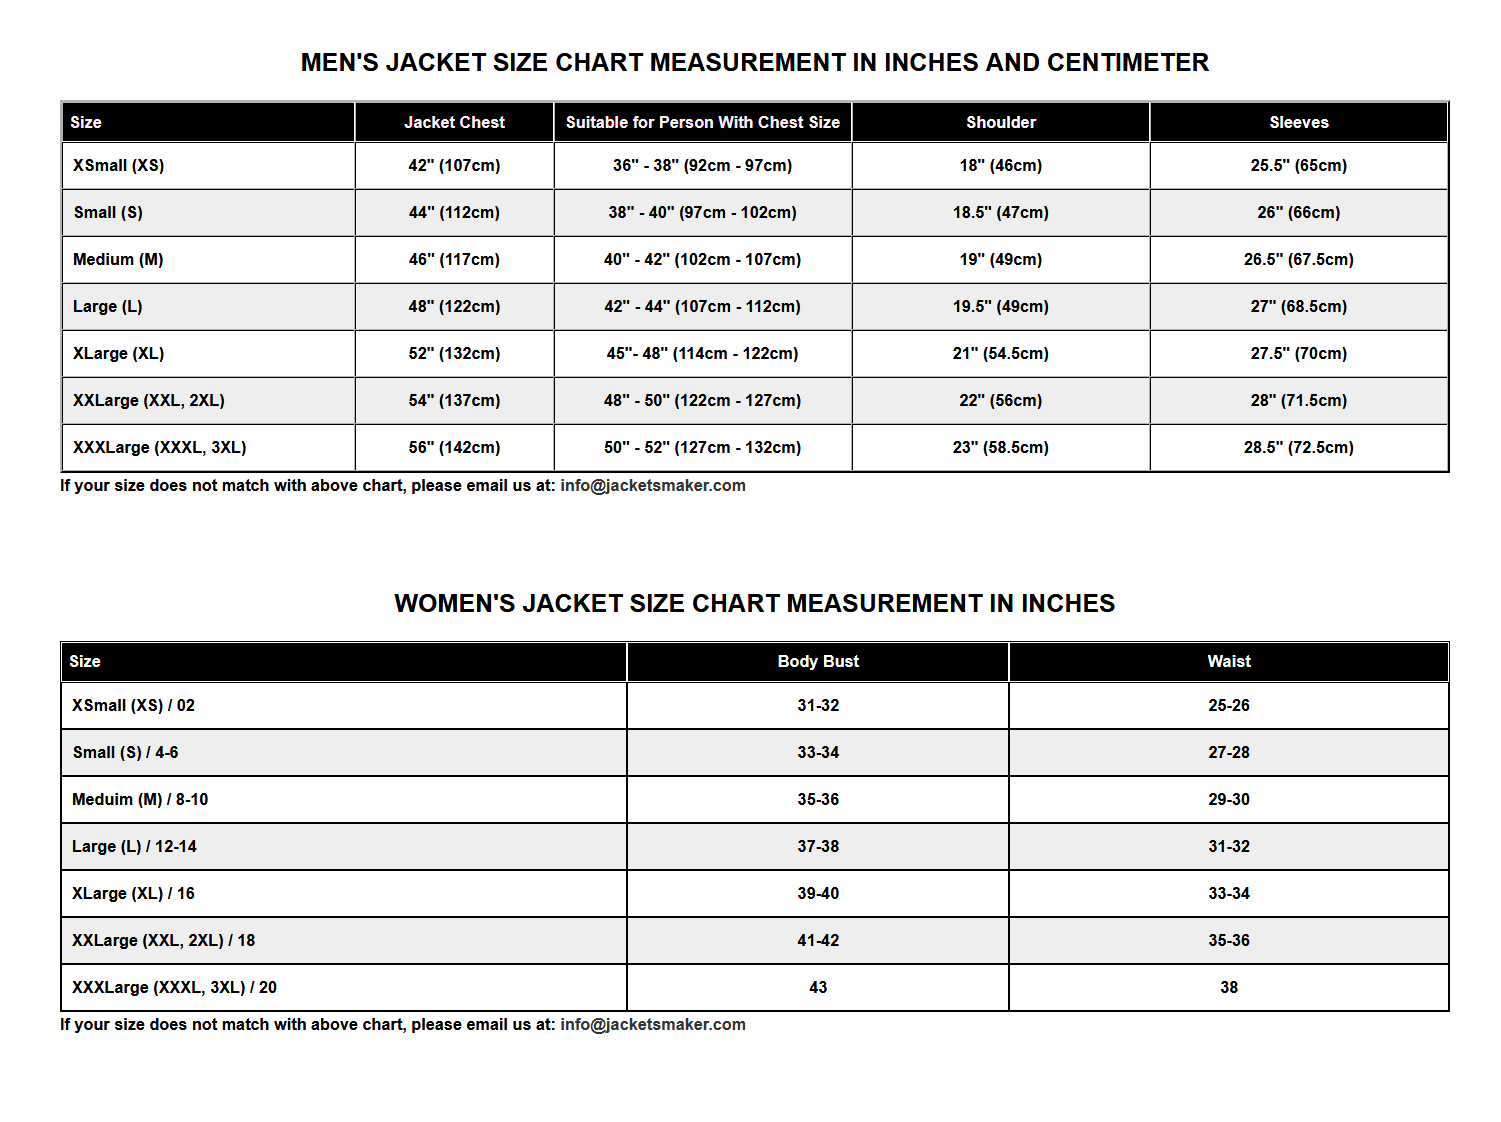 Men's jacket size chart measurement in inches and centimeter